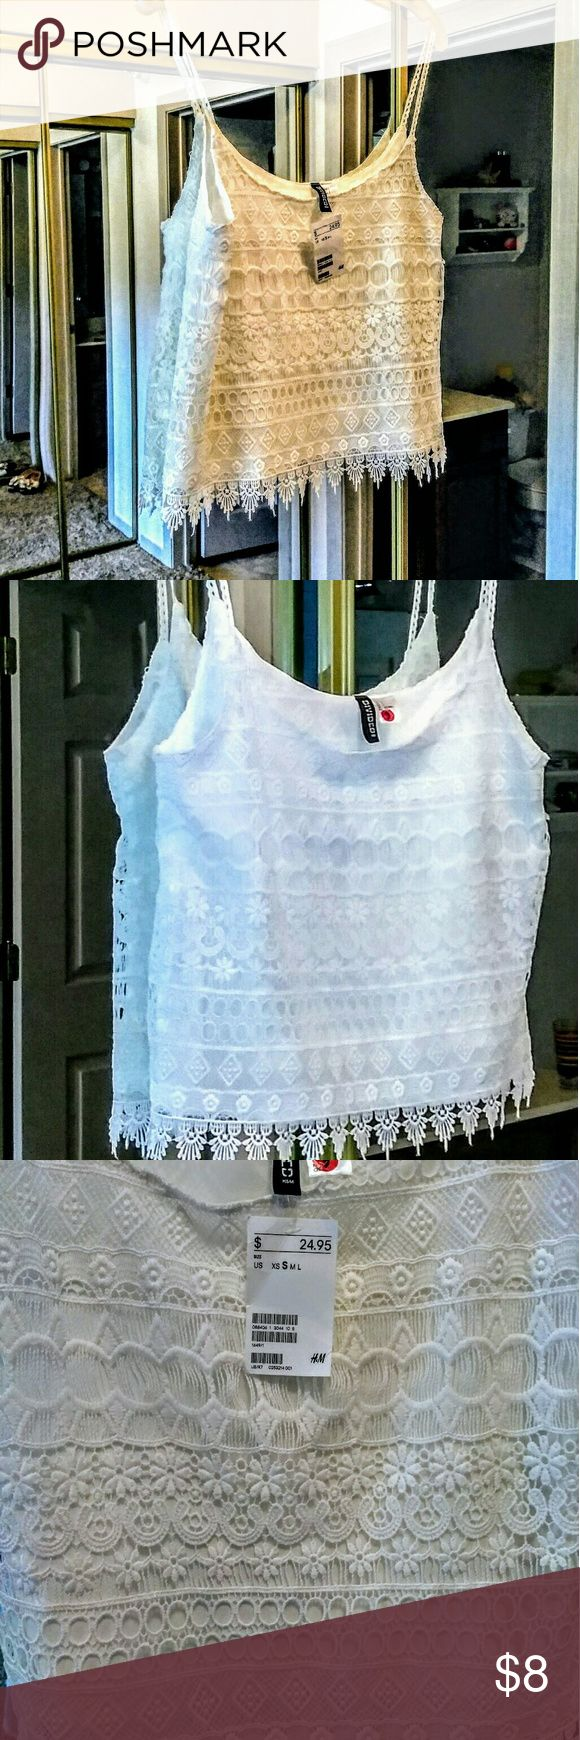 Beautiful White Lace Tank Top w/ fringe at bottom Pretty Lace Underlined Tank Top with thin straps and lace fringe at bottom Divided Tops Tank Tops